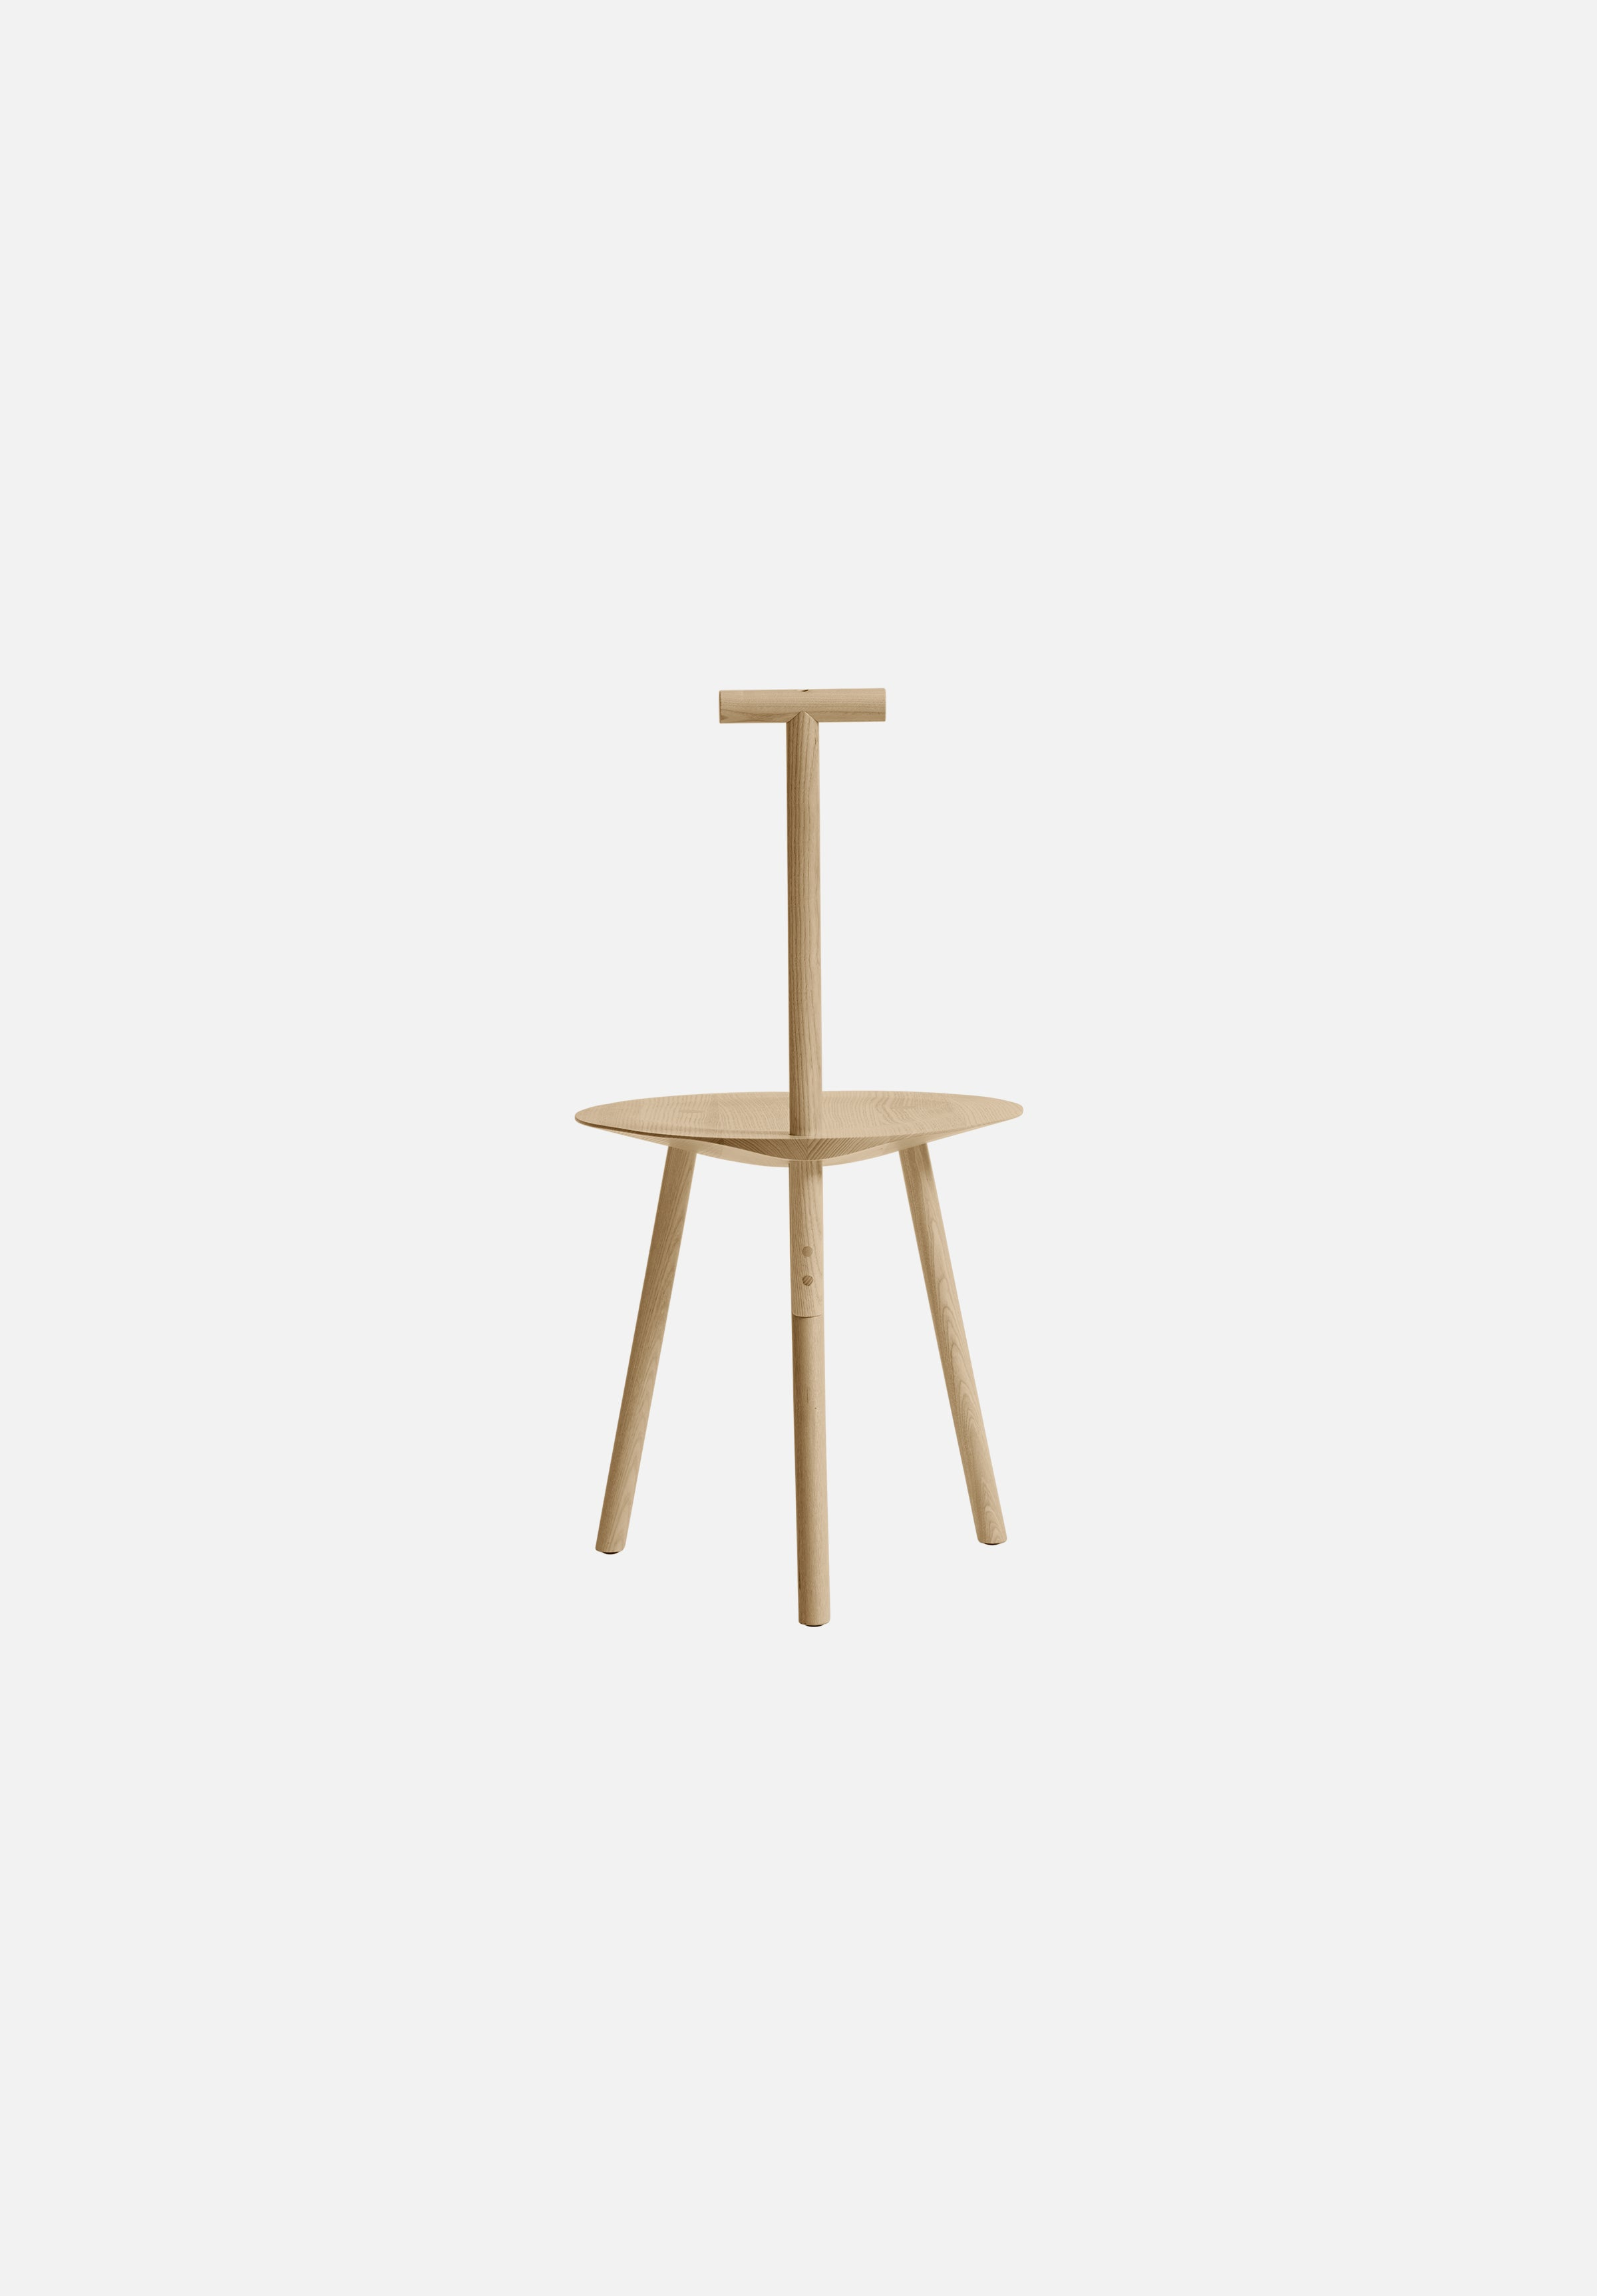 Spade Chair-Faye Toogood-Please Wait to be Seated-Natural-Average